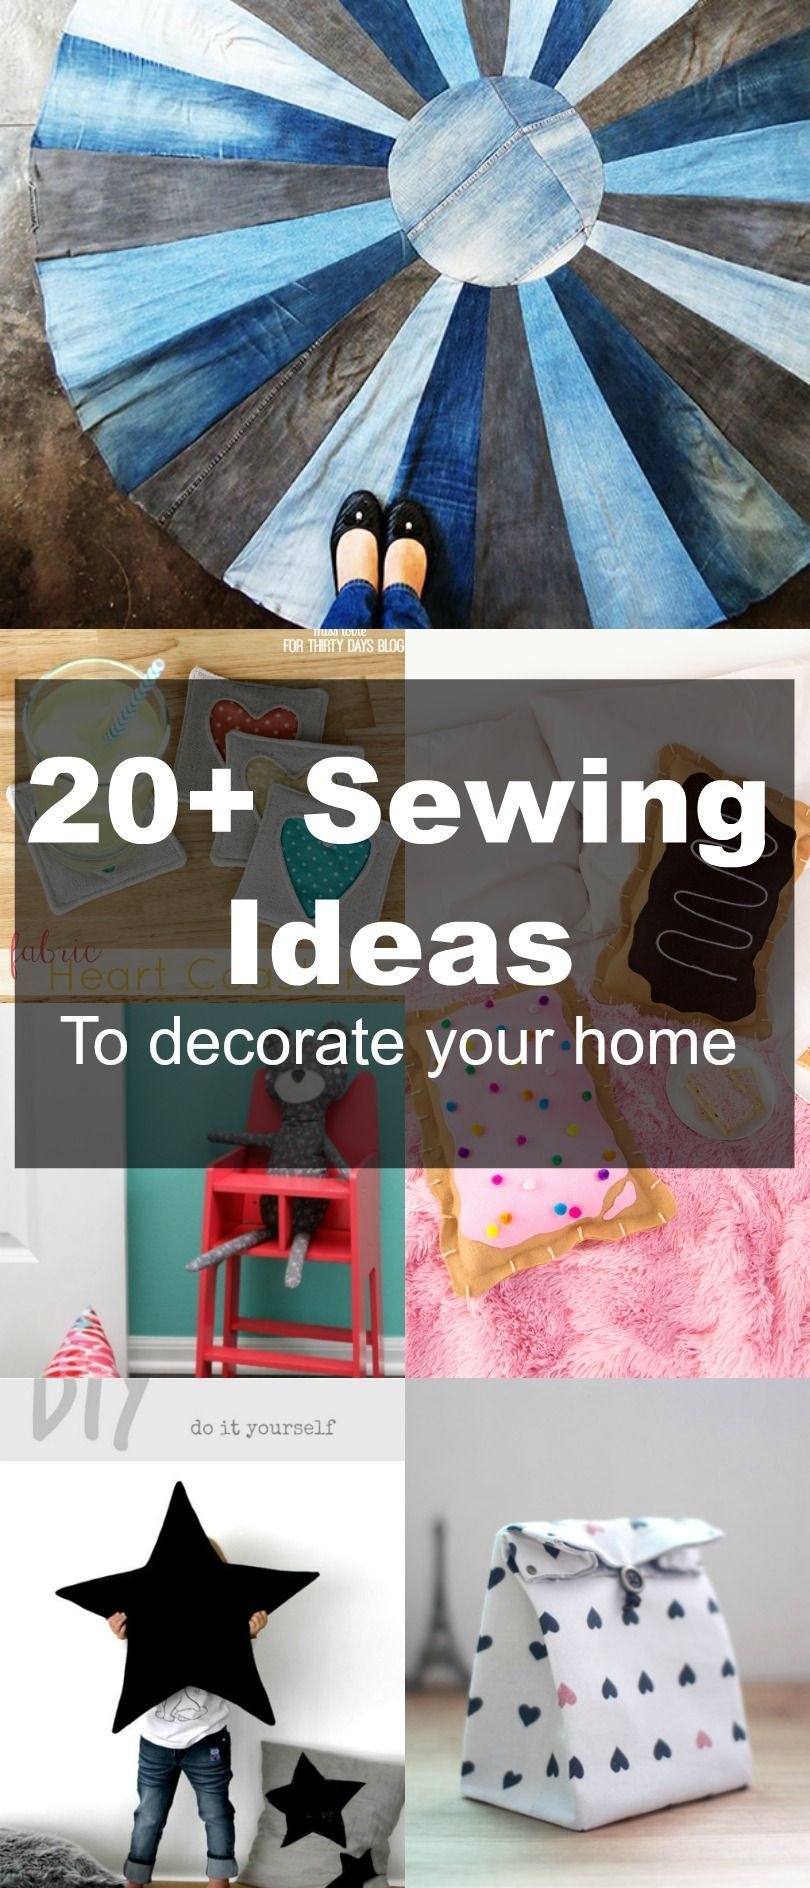 FREE SEWING PATTERNS: 20+ Home Decor Ideas to Sew: Learn how to make ...